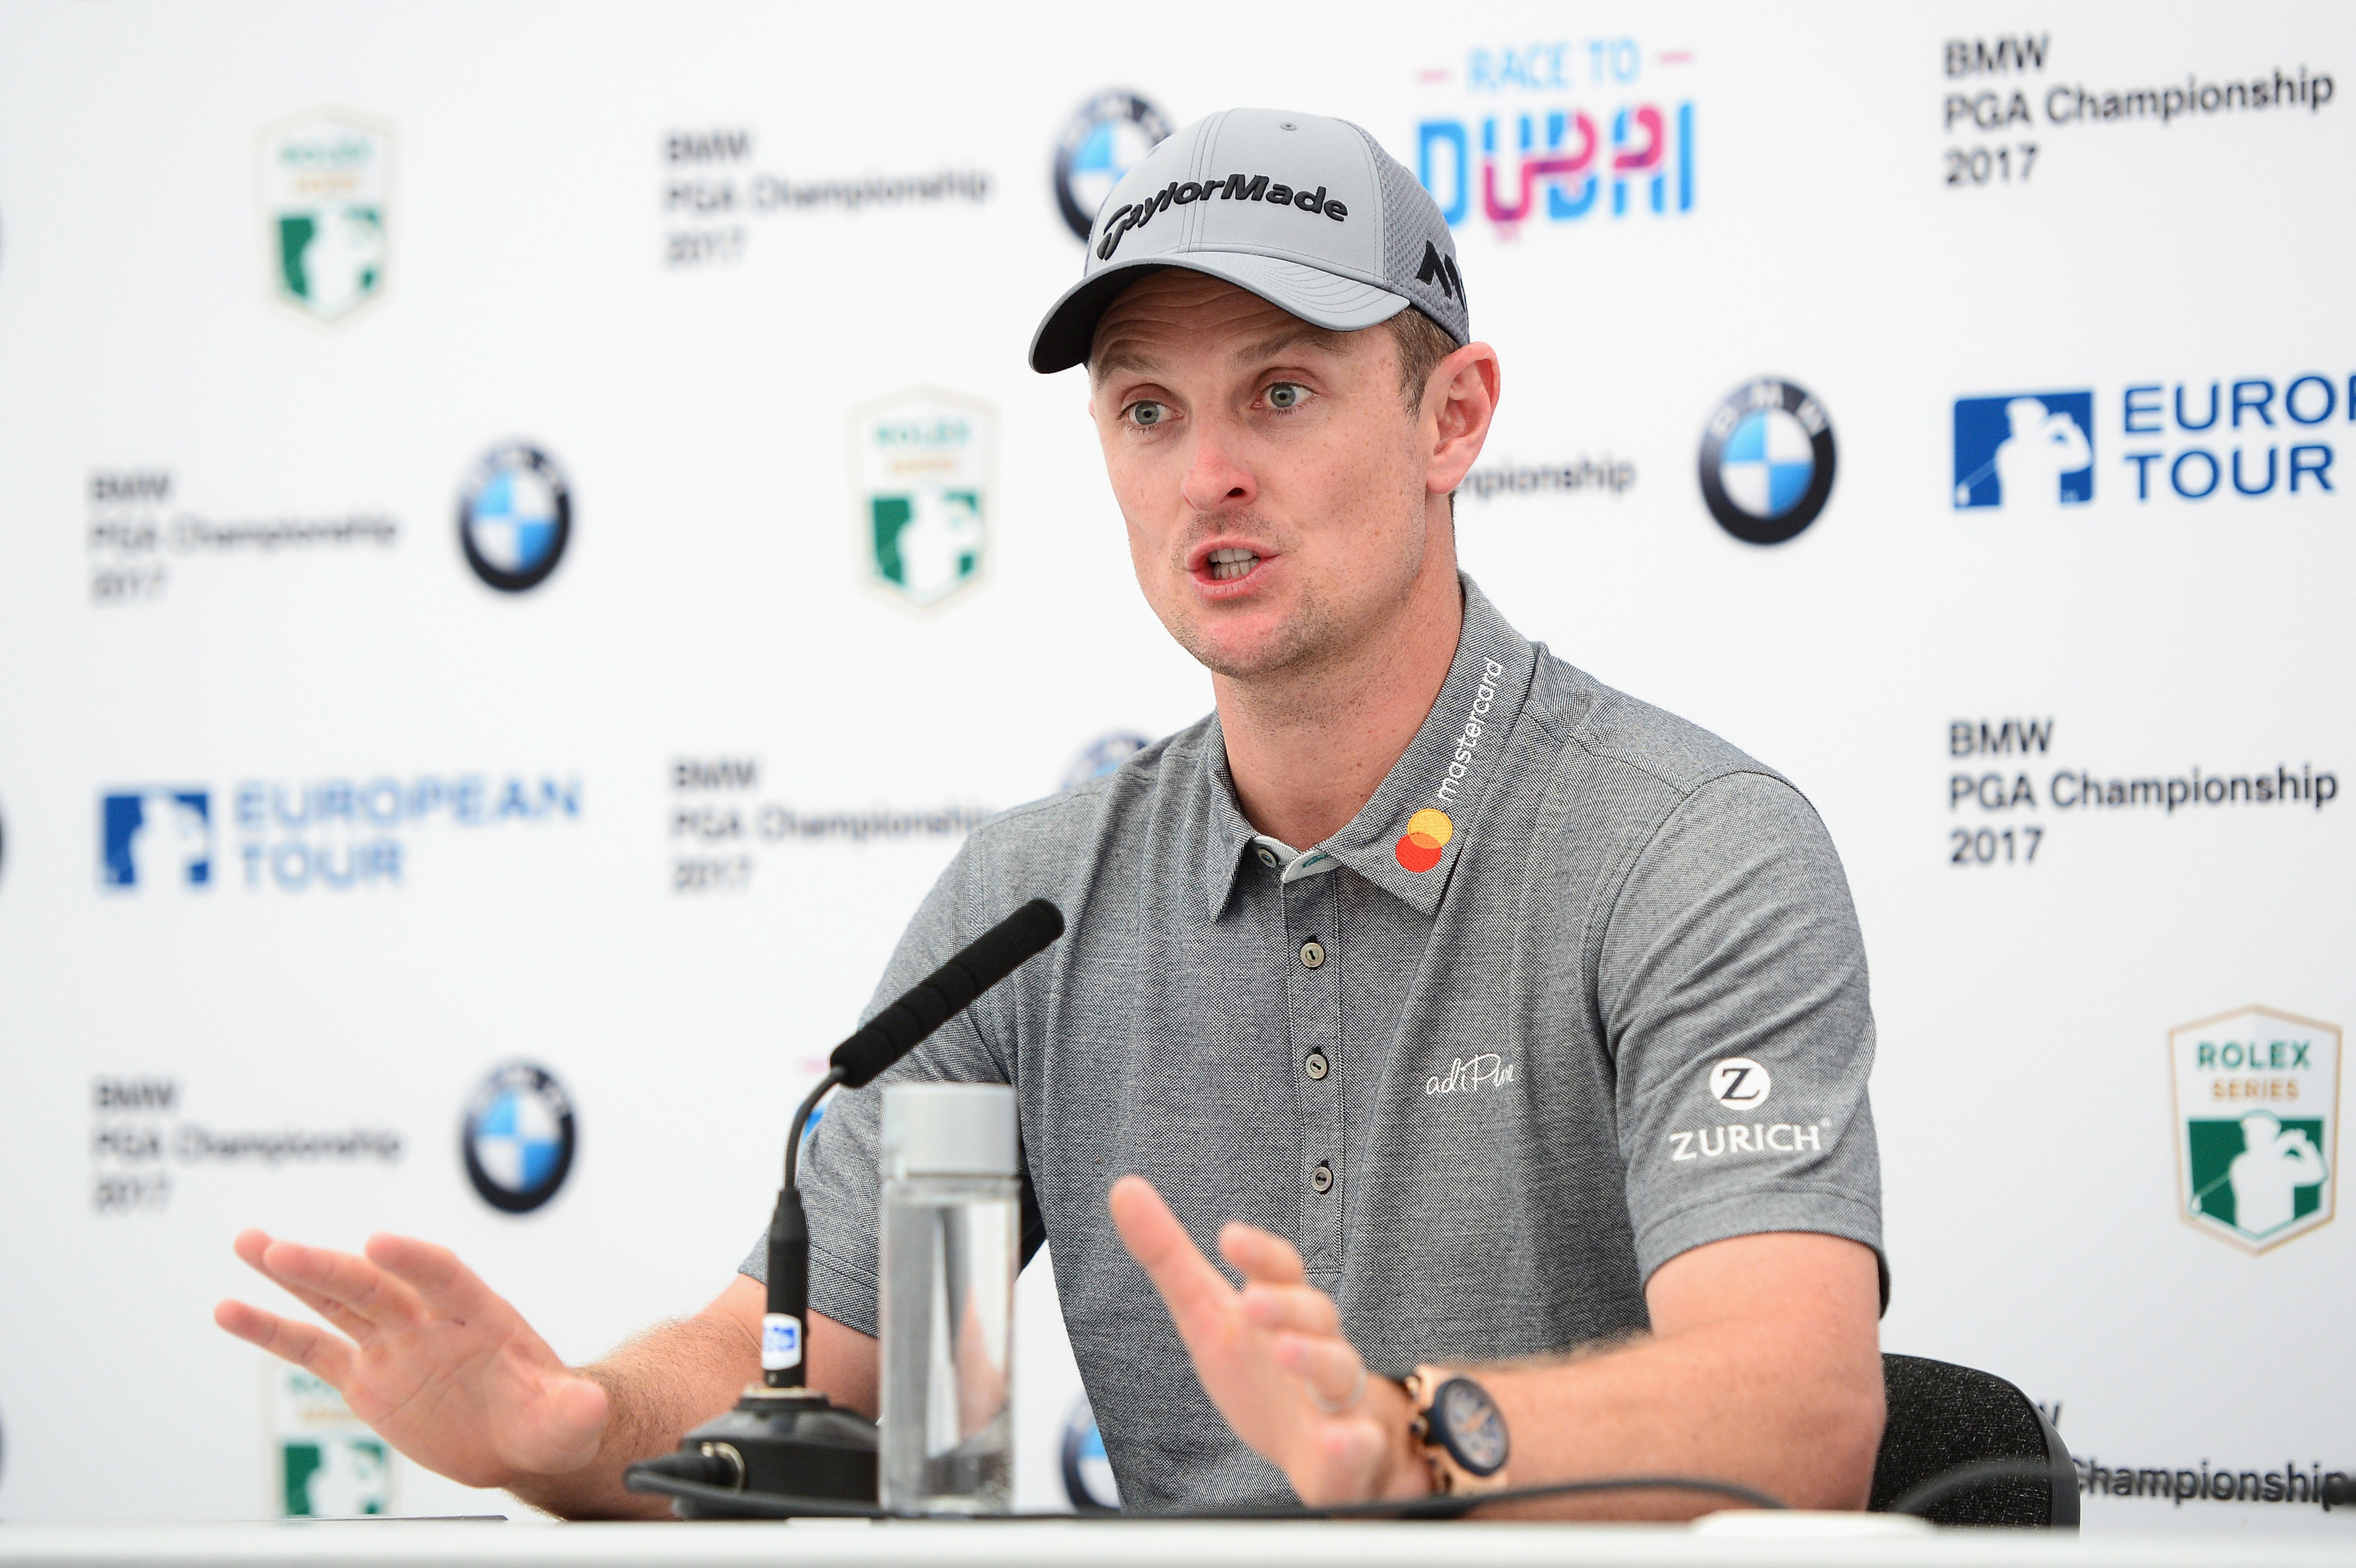 Justin Rose wants a BMW PGA Championship title on his honour roll.